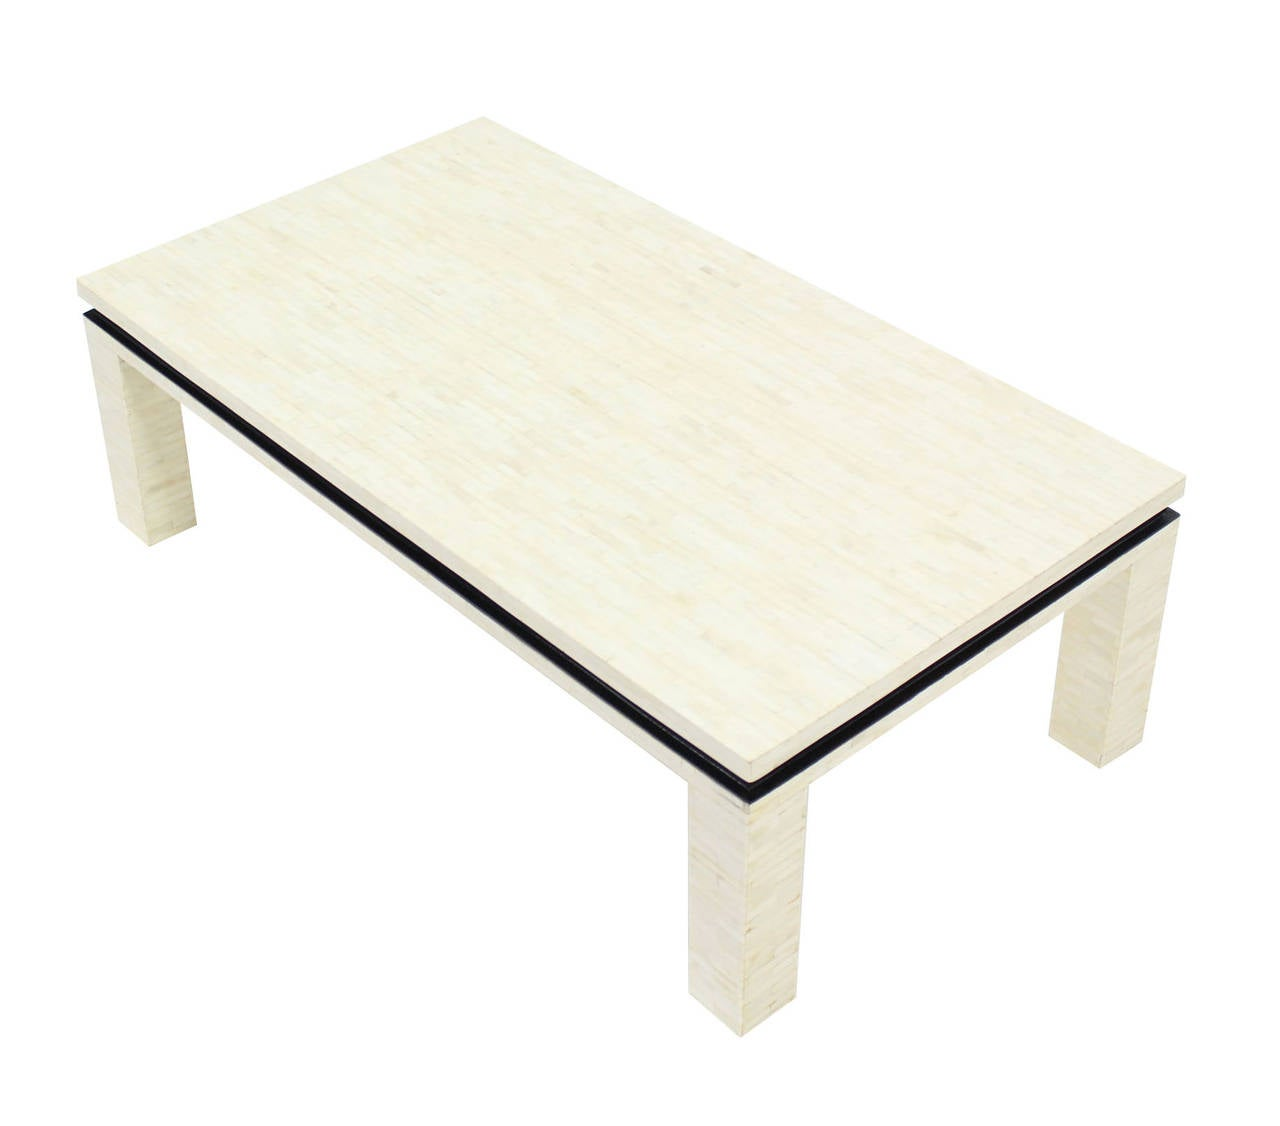 bone tile rectangle coffee table at 1stdibs. Black Bedroom Furniture Sets. Home Design Ideas